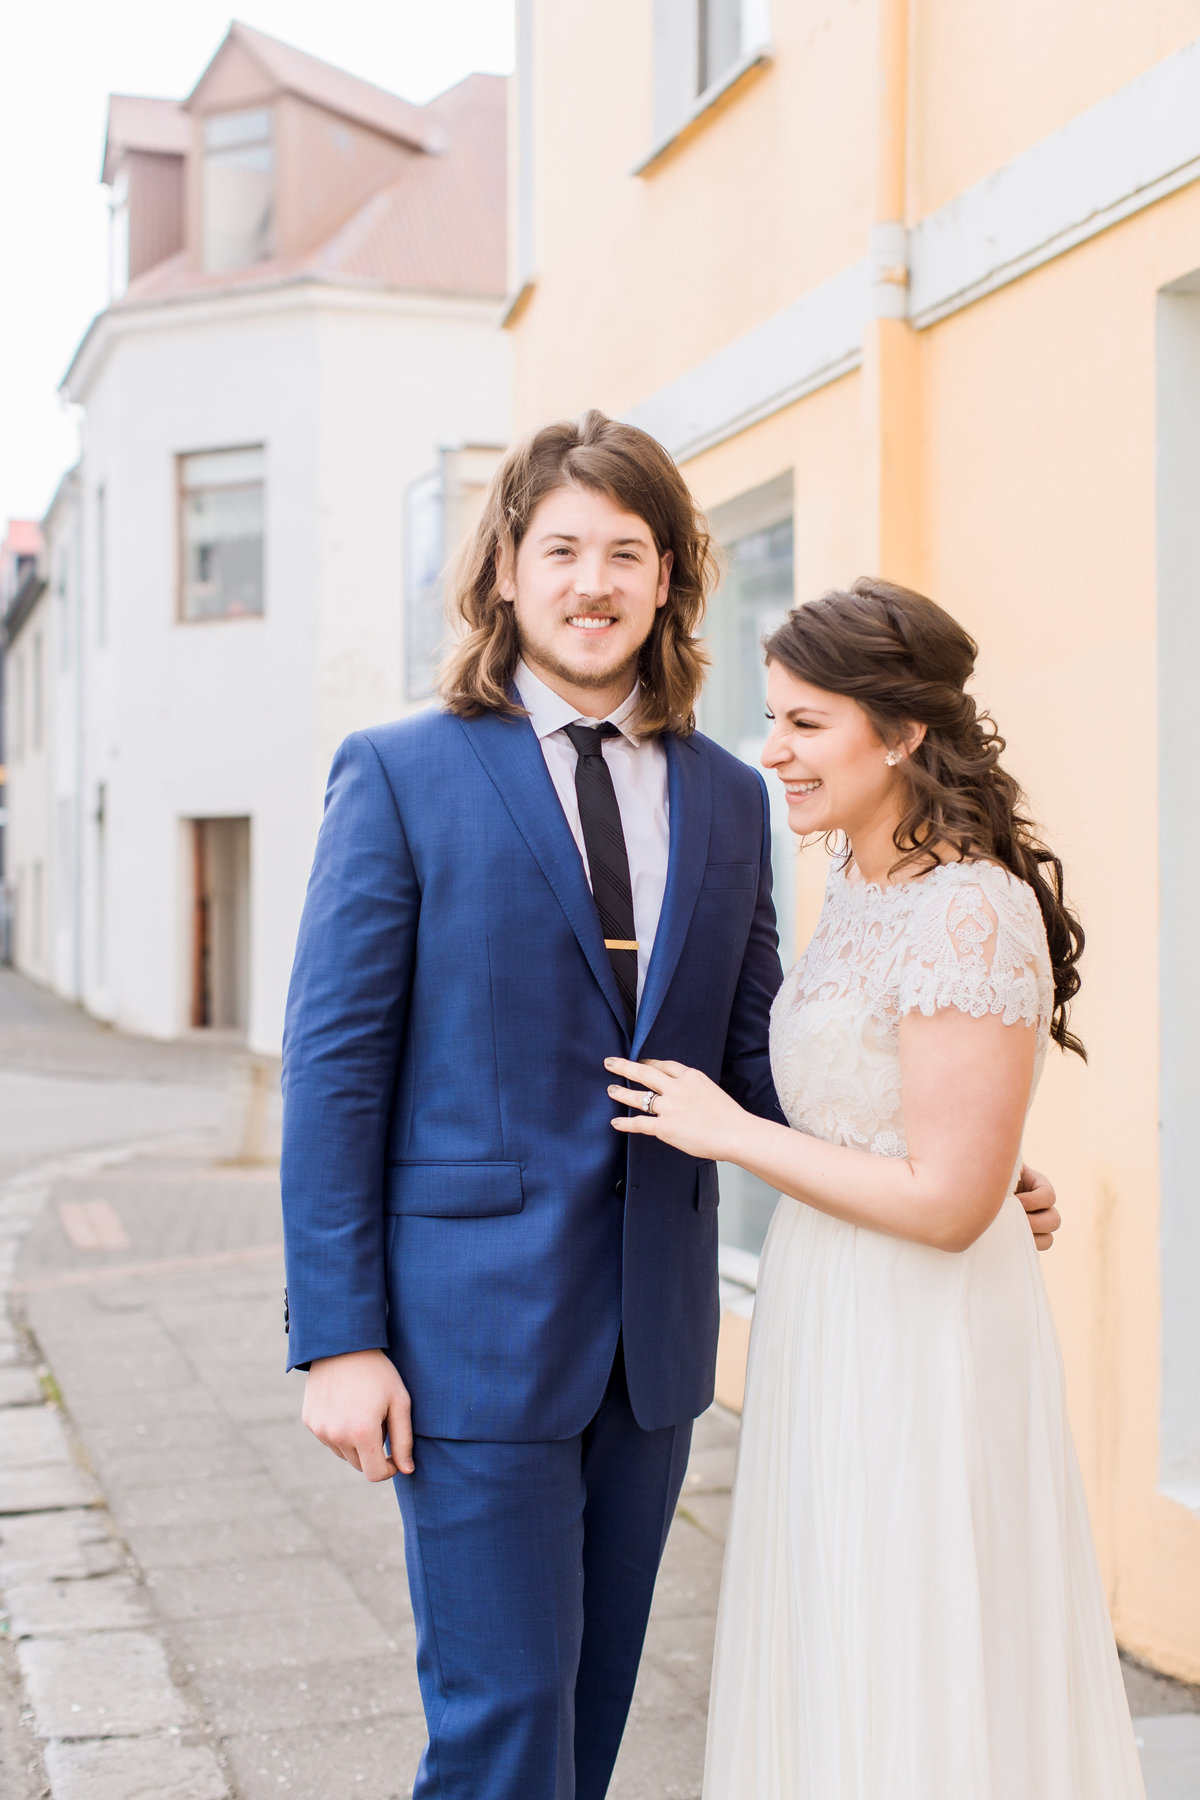 IcelandWedding_OliviaScott_DestinationWedding_CatherineRhodesPhotography-147-Edit